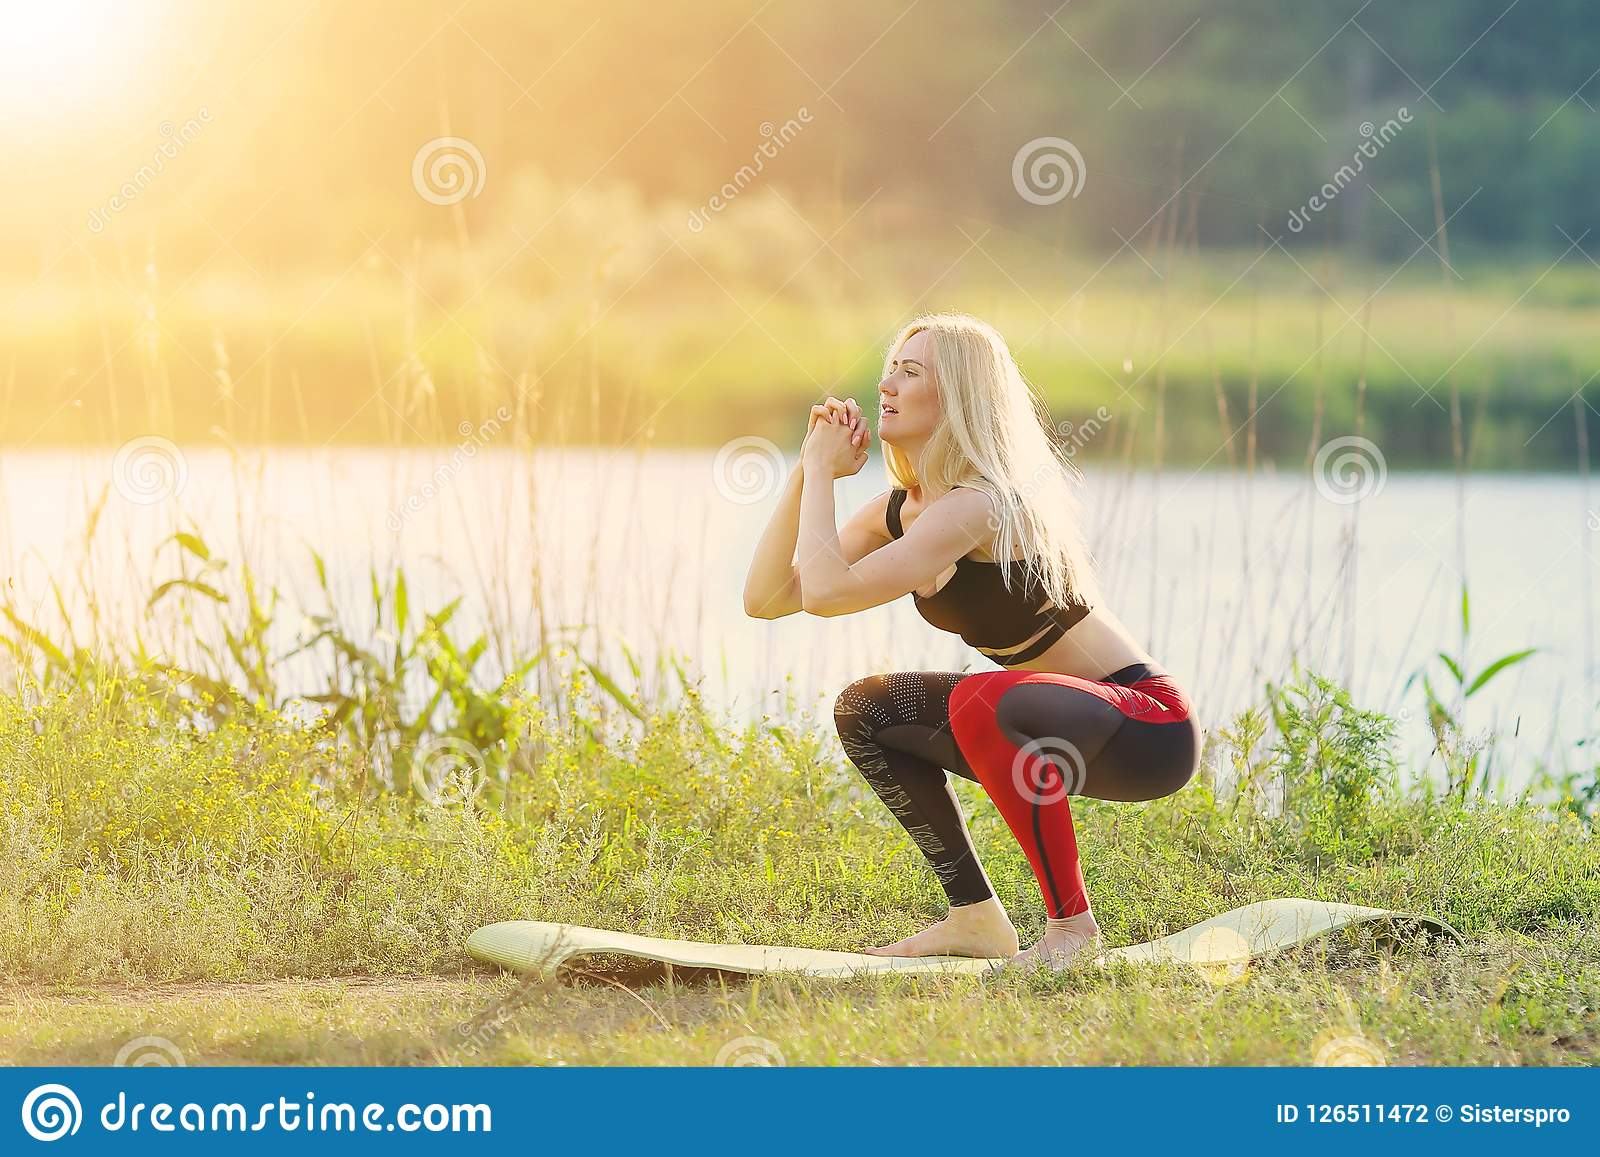 Portrait Of Female Athlete In Professional Training Outfit